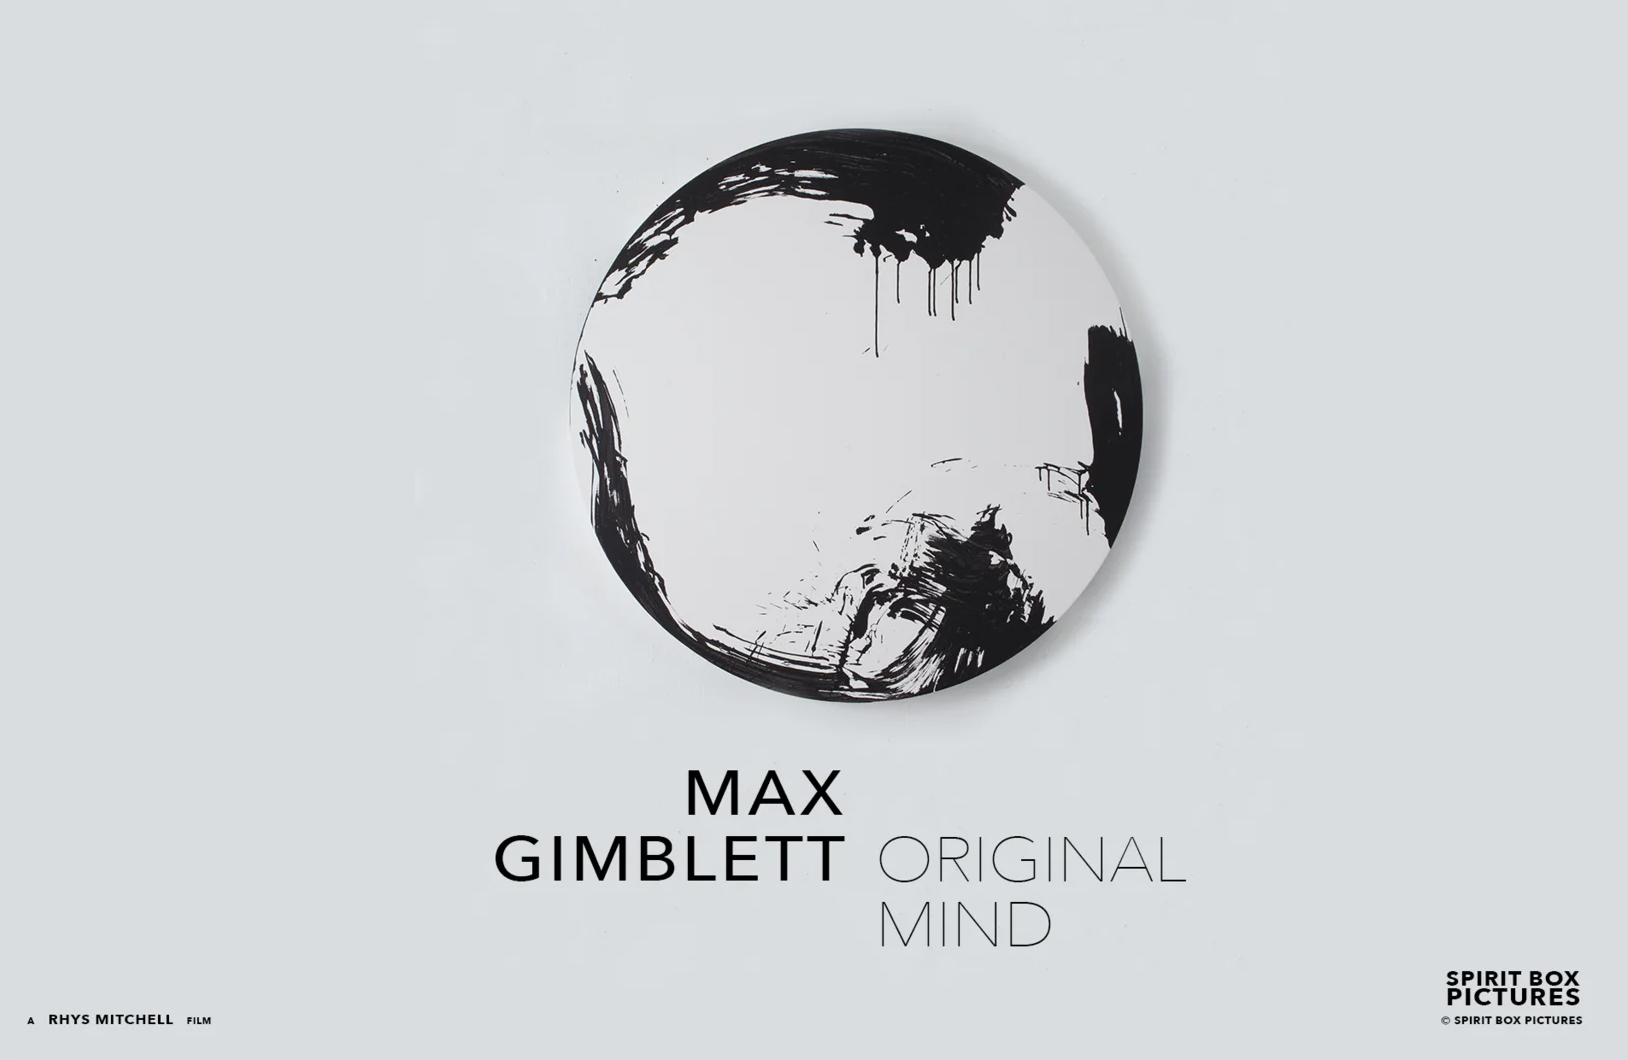 Max Gimblett - Original Mind Available to Watch Online